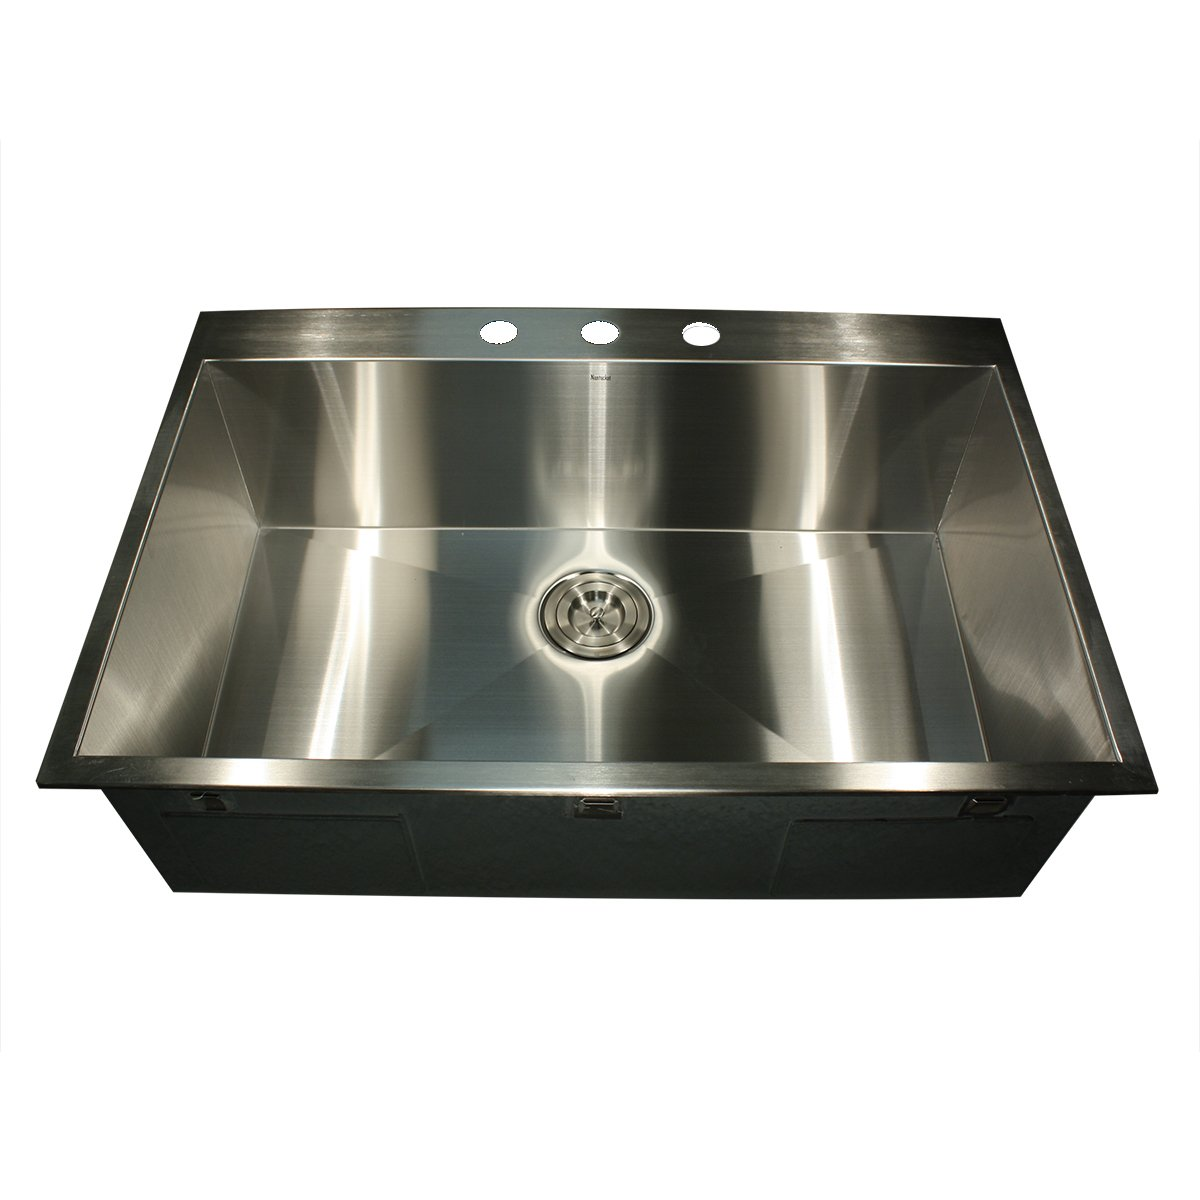 Nantucket Sinks ZR3322 33-Inch Pro Series Single Bowl Self-Rimming Kitchen Sink, Stainless Steel